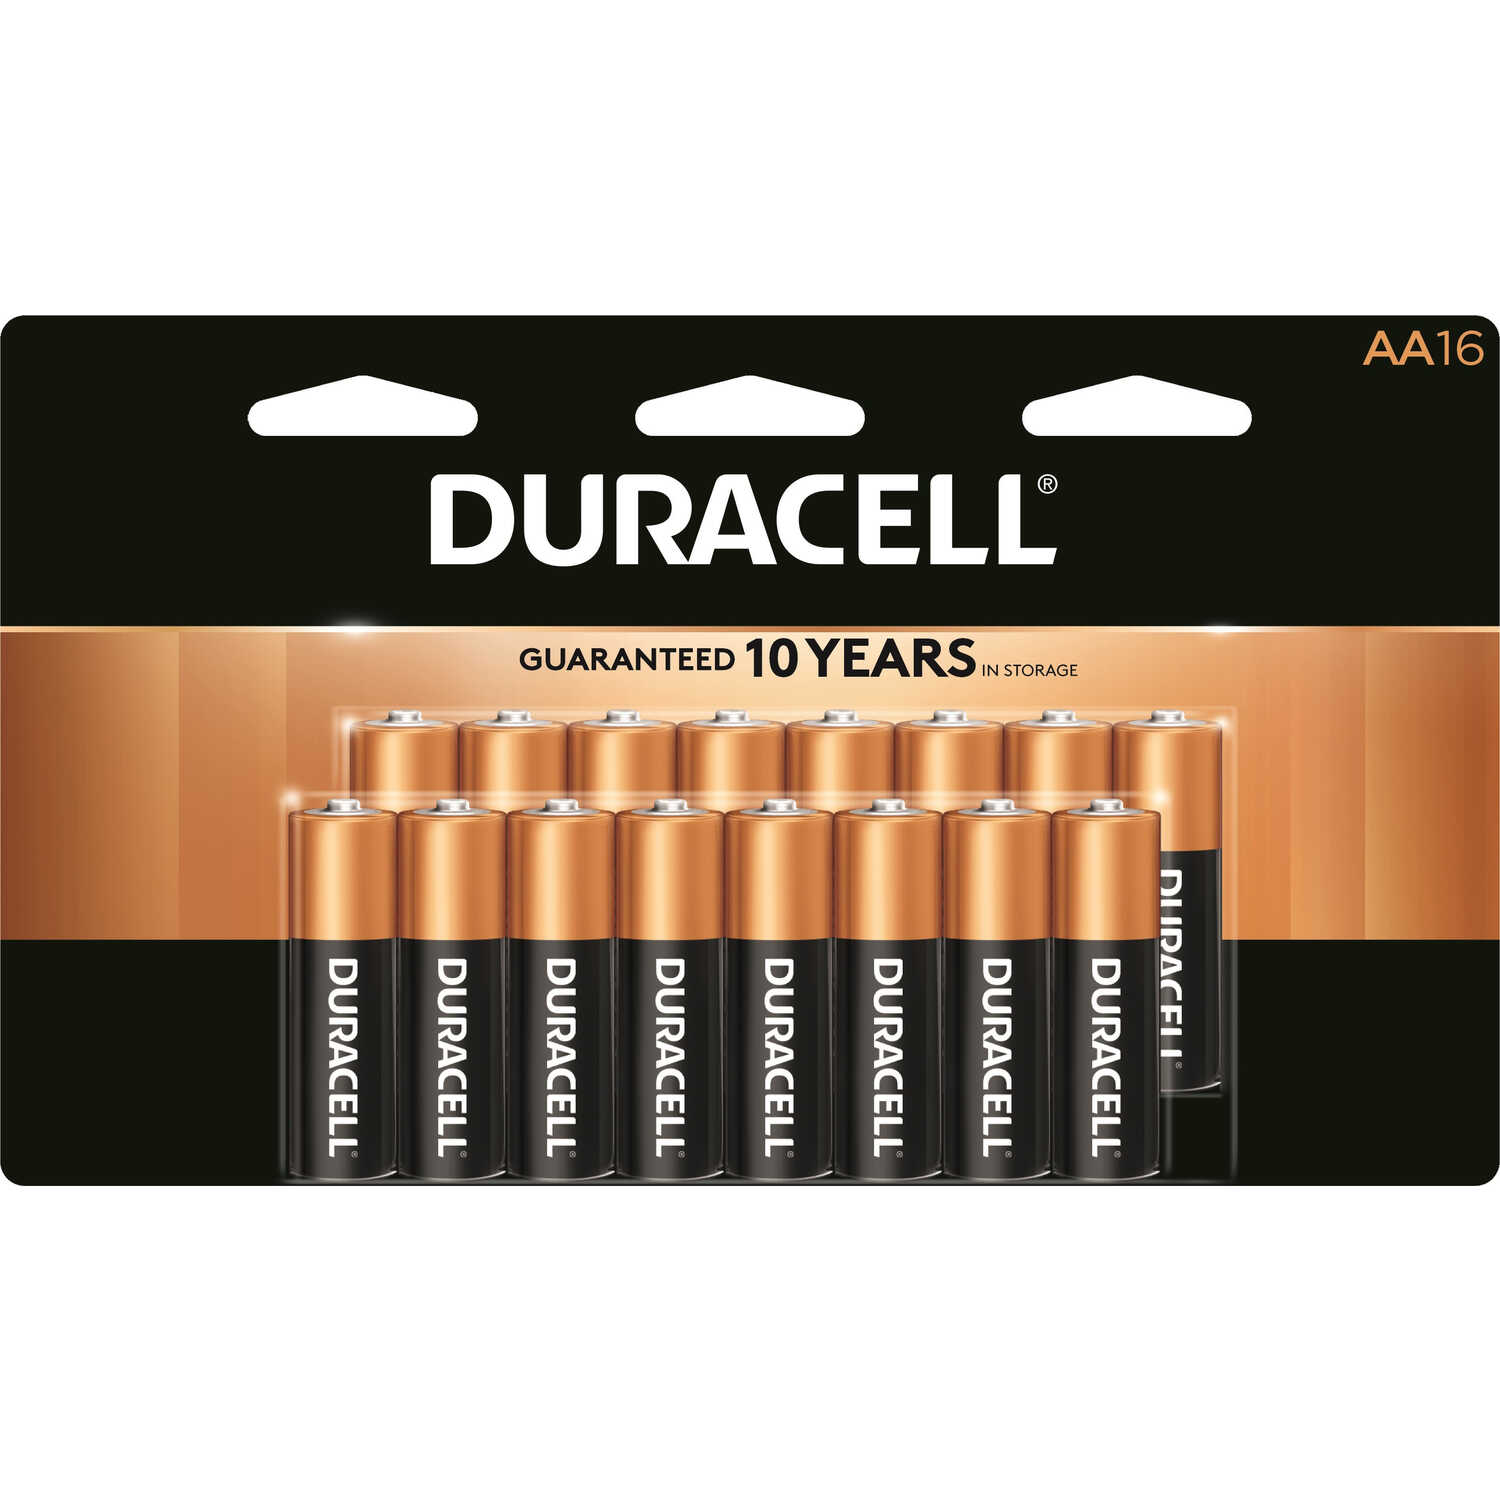 Duracell  Coppertop  AA  Alkaline  Batteries  1.5 volt 16 pk Carded